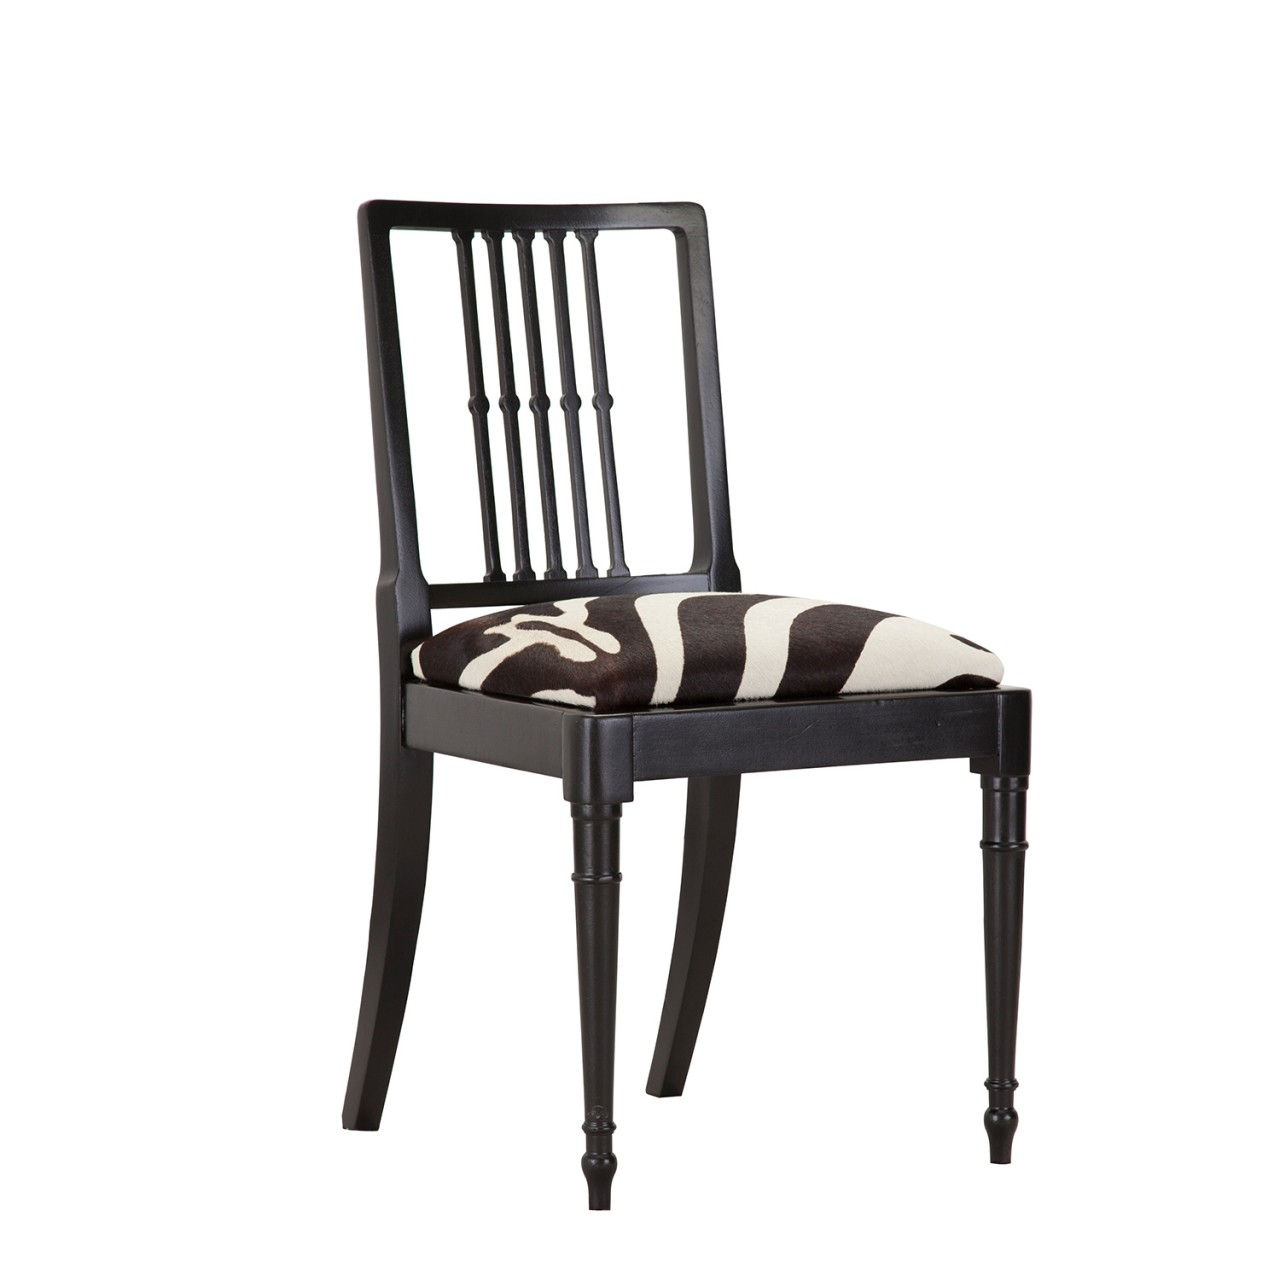 cowhide chairs uk peg perego siesta high chair review upcycled black with zebra print seat